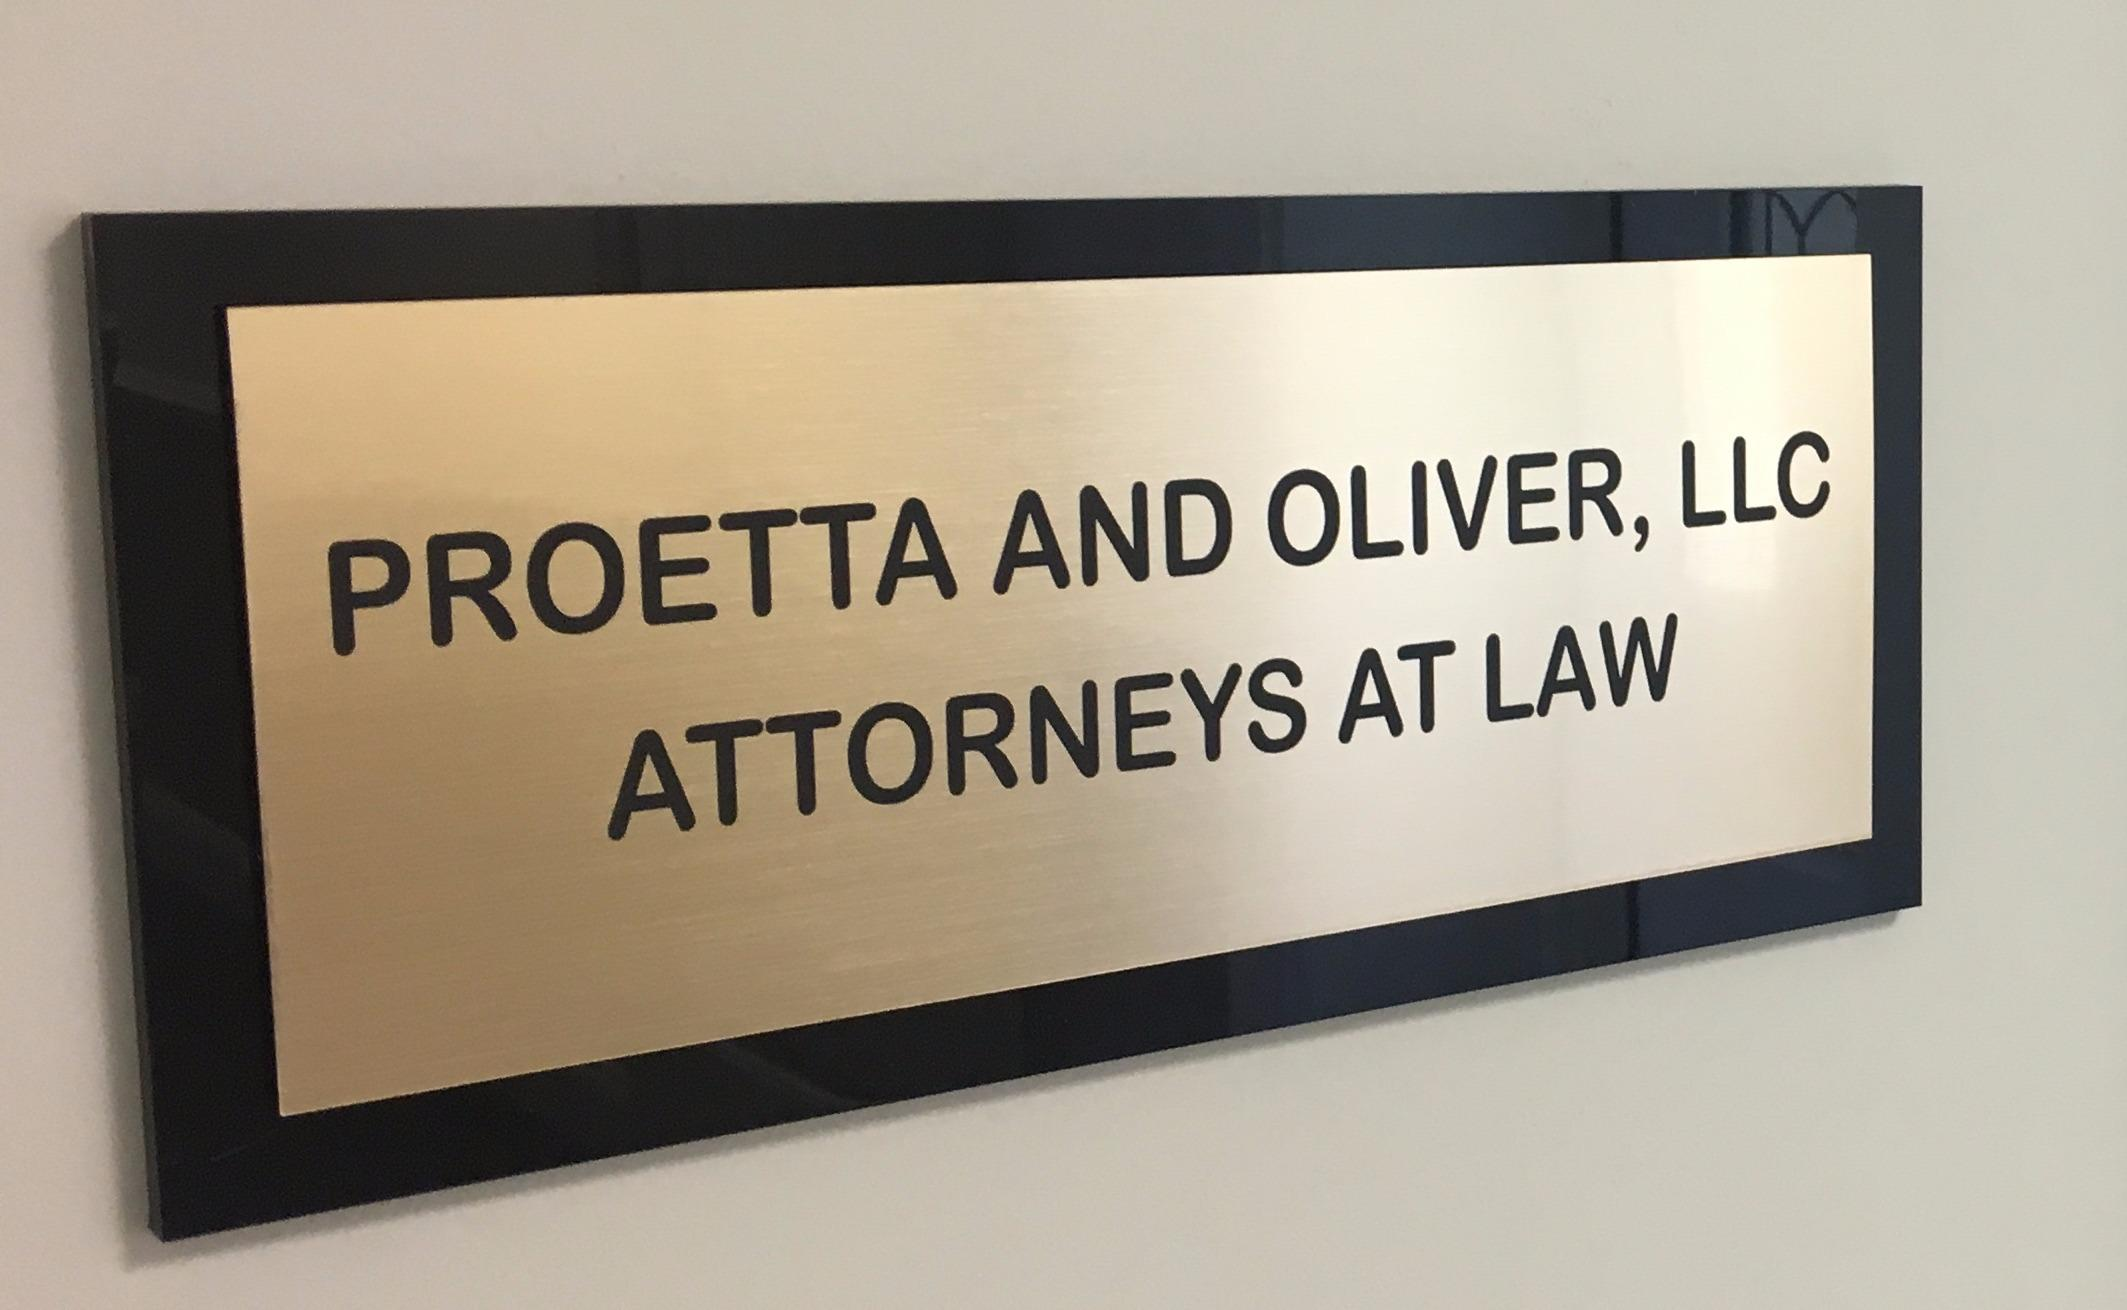 Keith G. Oliver, Esq at Proetta & Oliver image 0